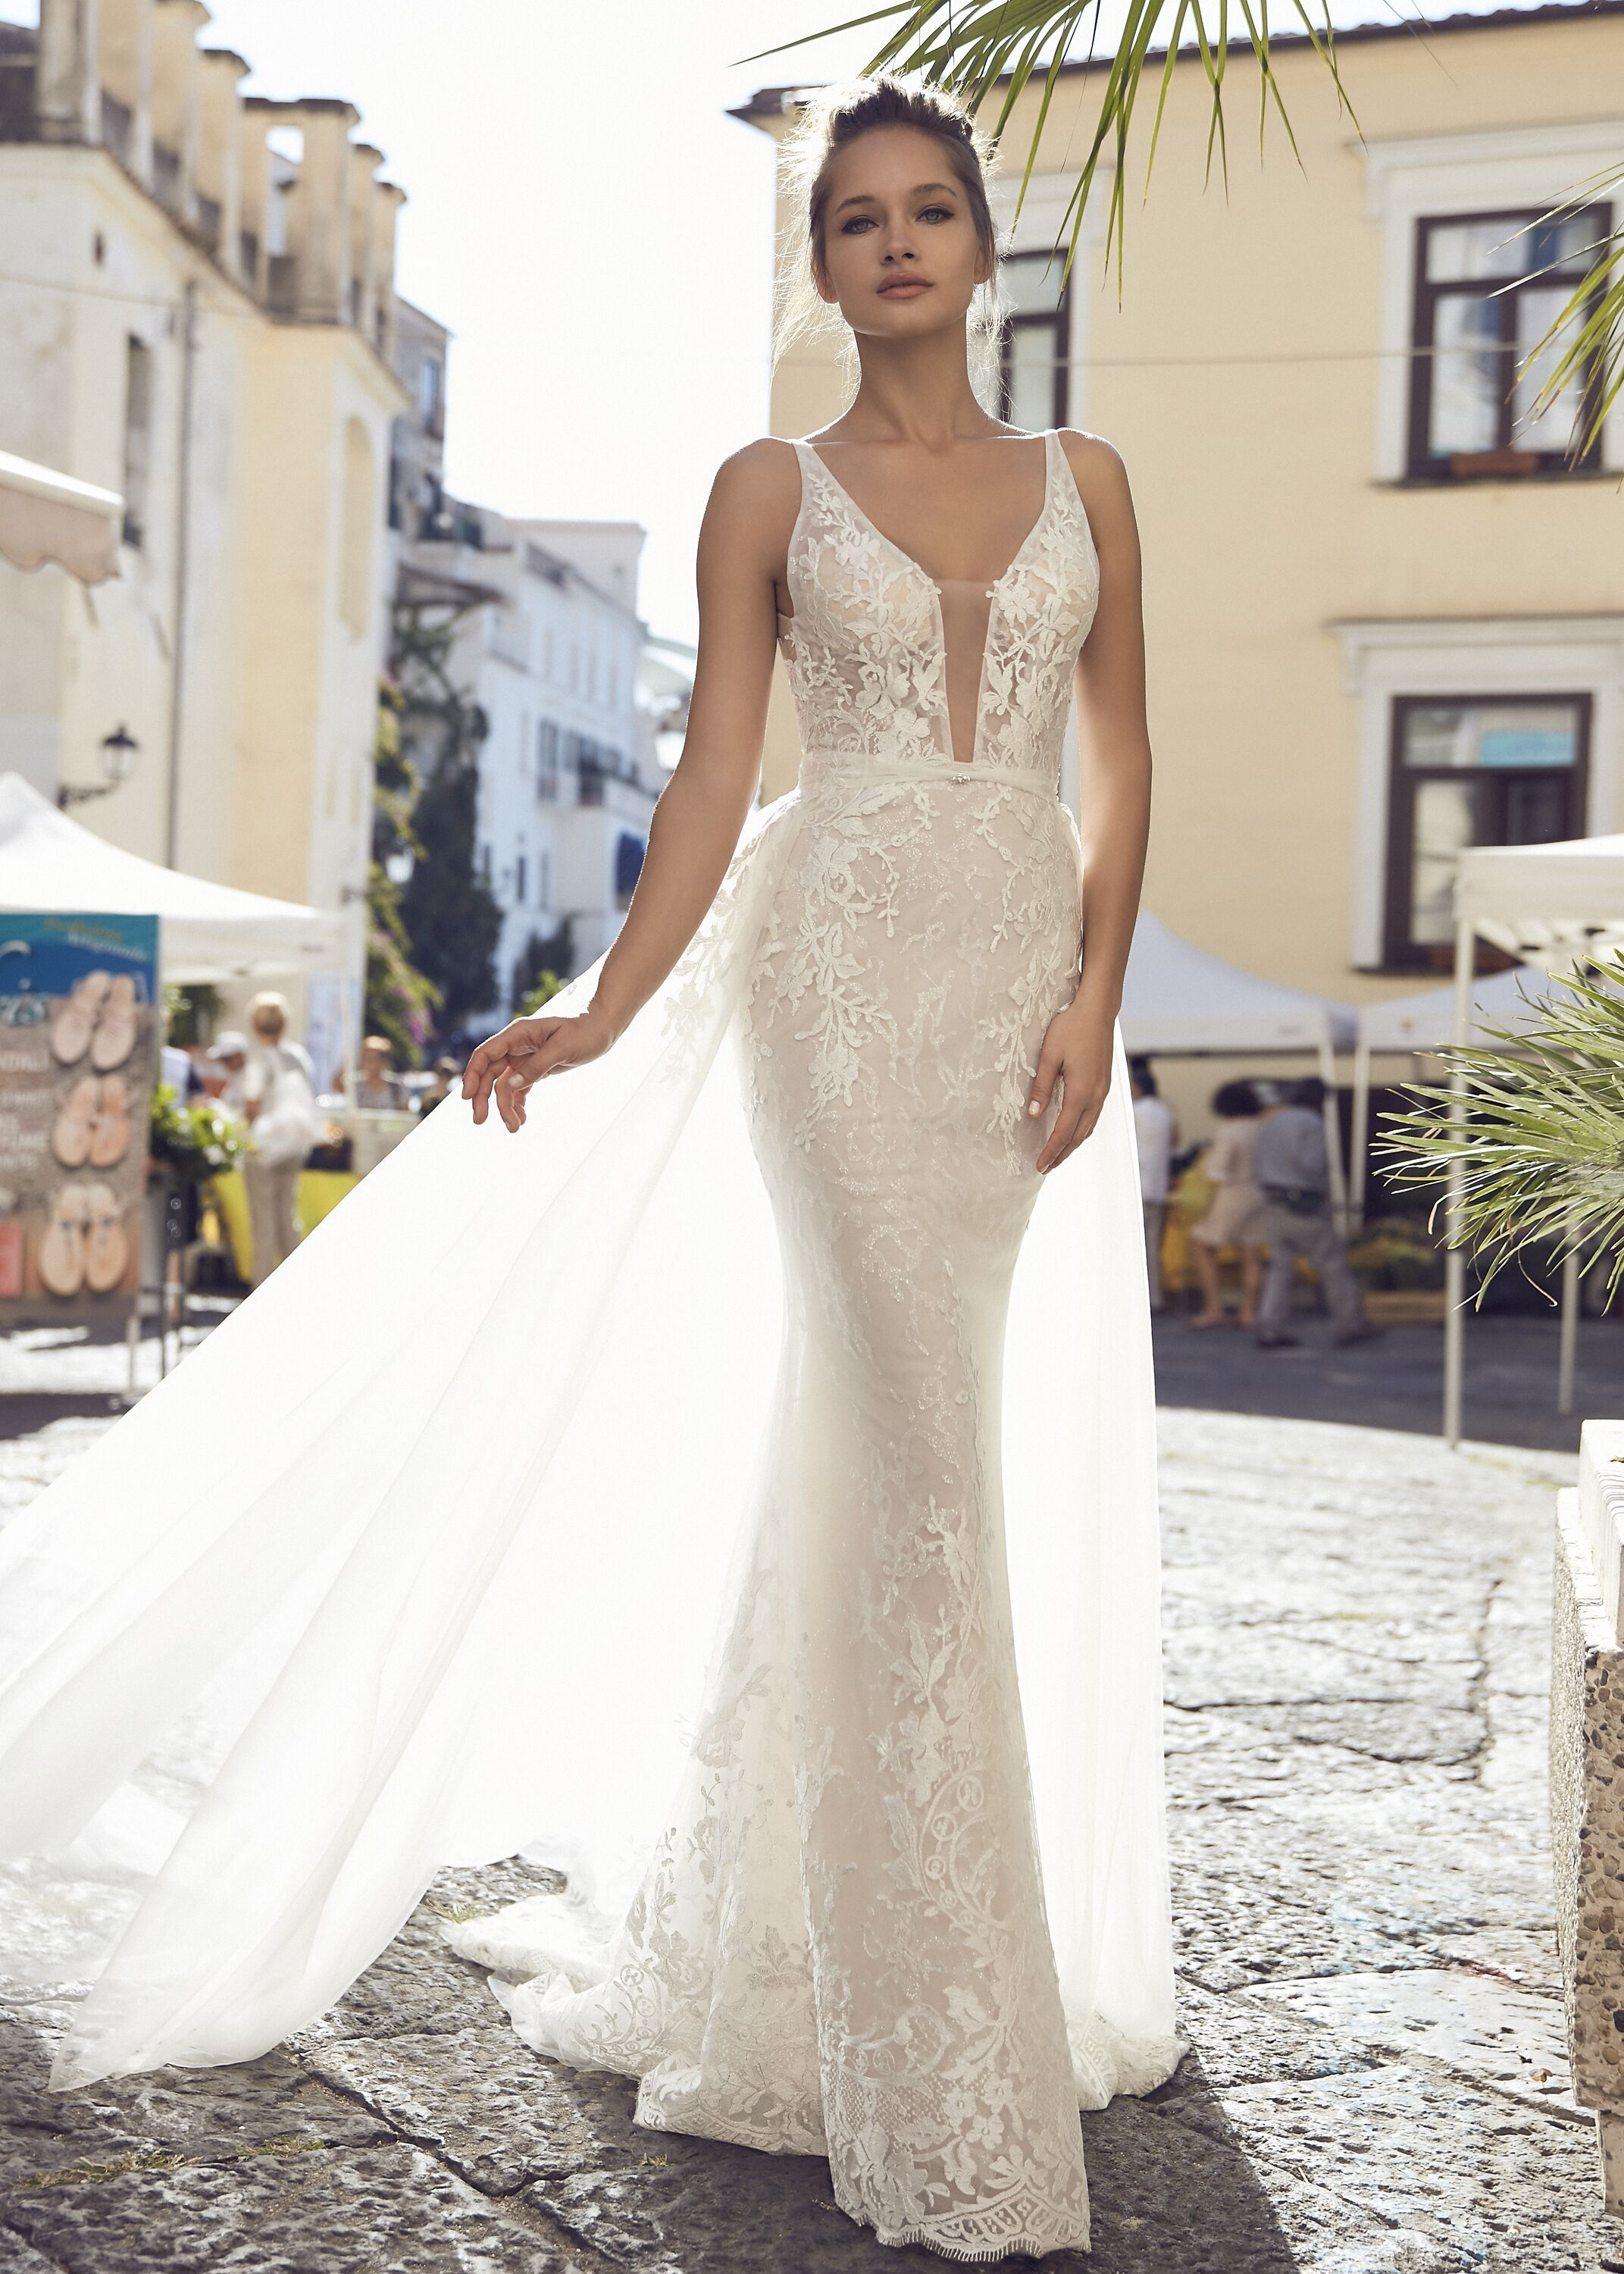 2in1 wedding dress, with detachable skirt in 2020 Belle